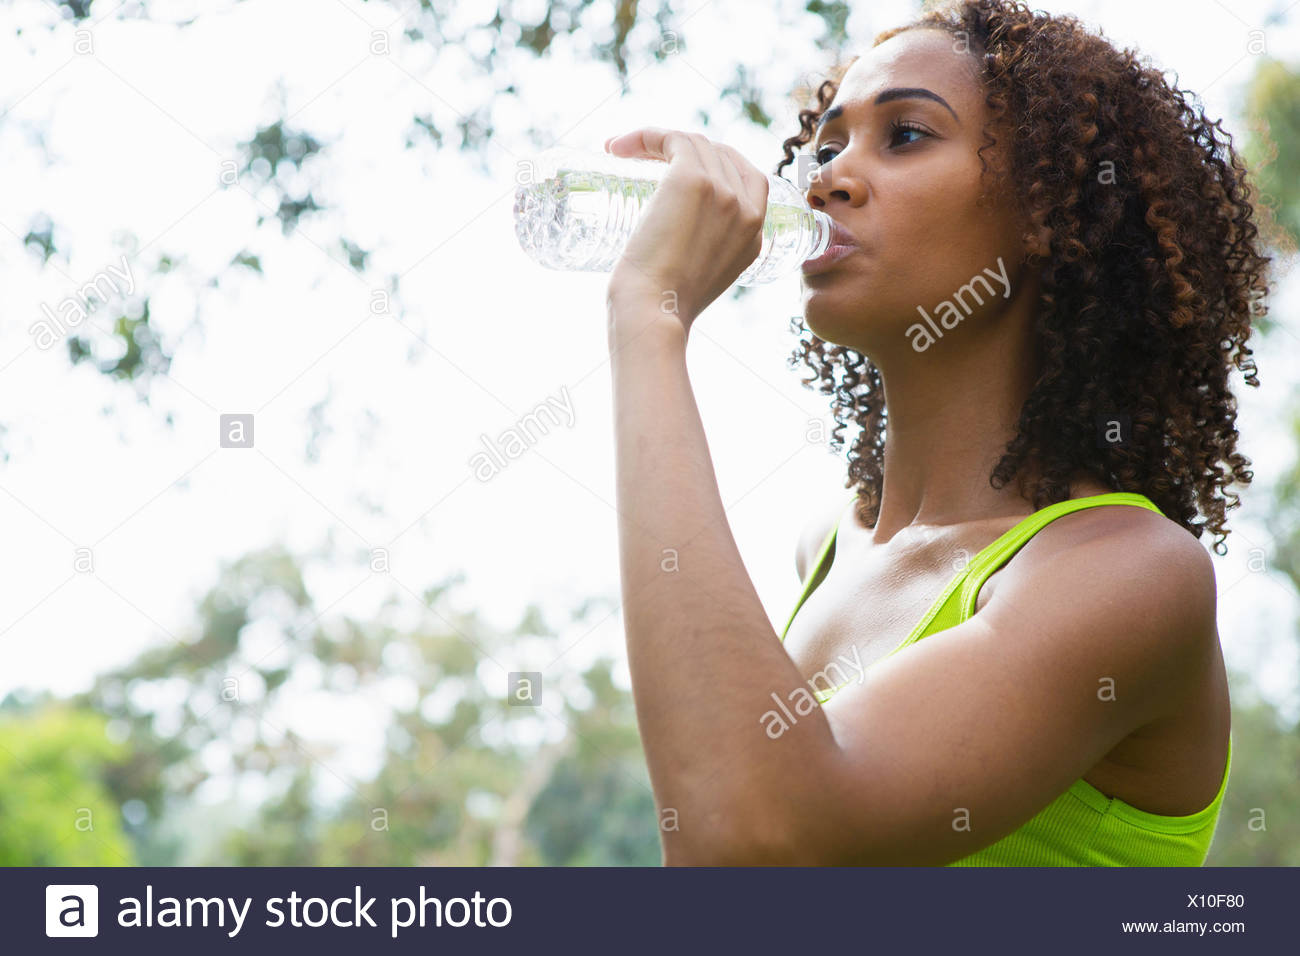 Mid adult woman drinking from water bottle Photo Stock